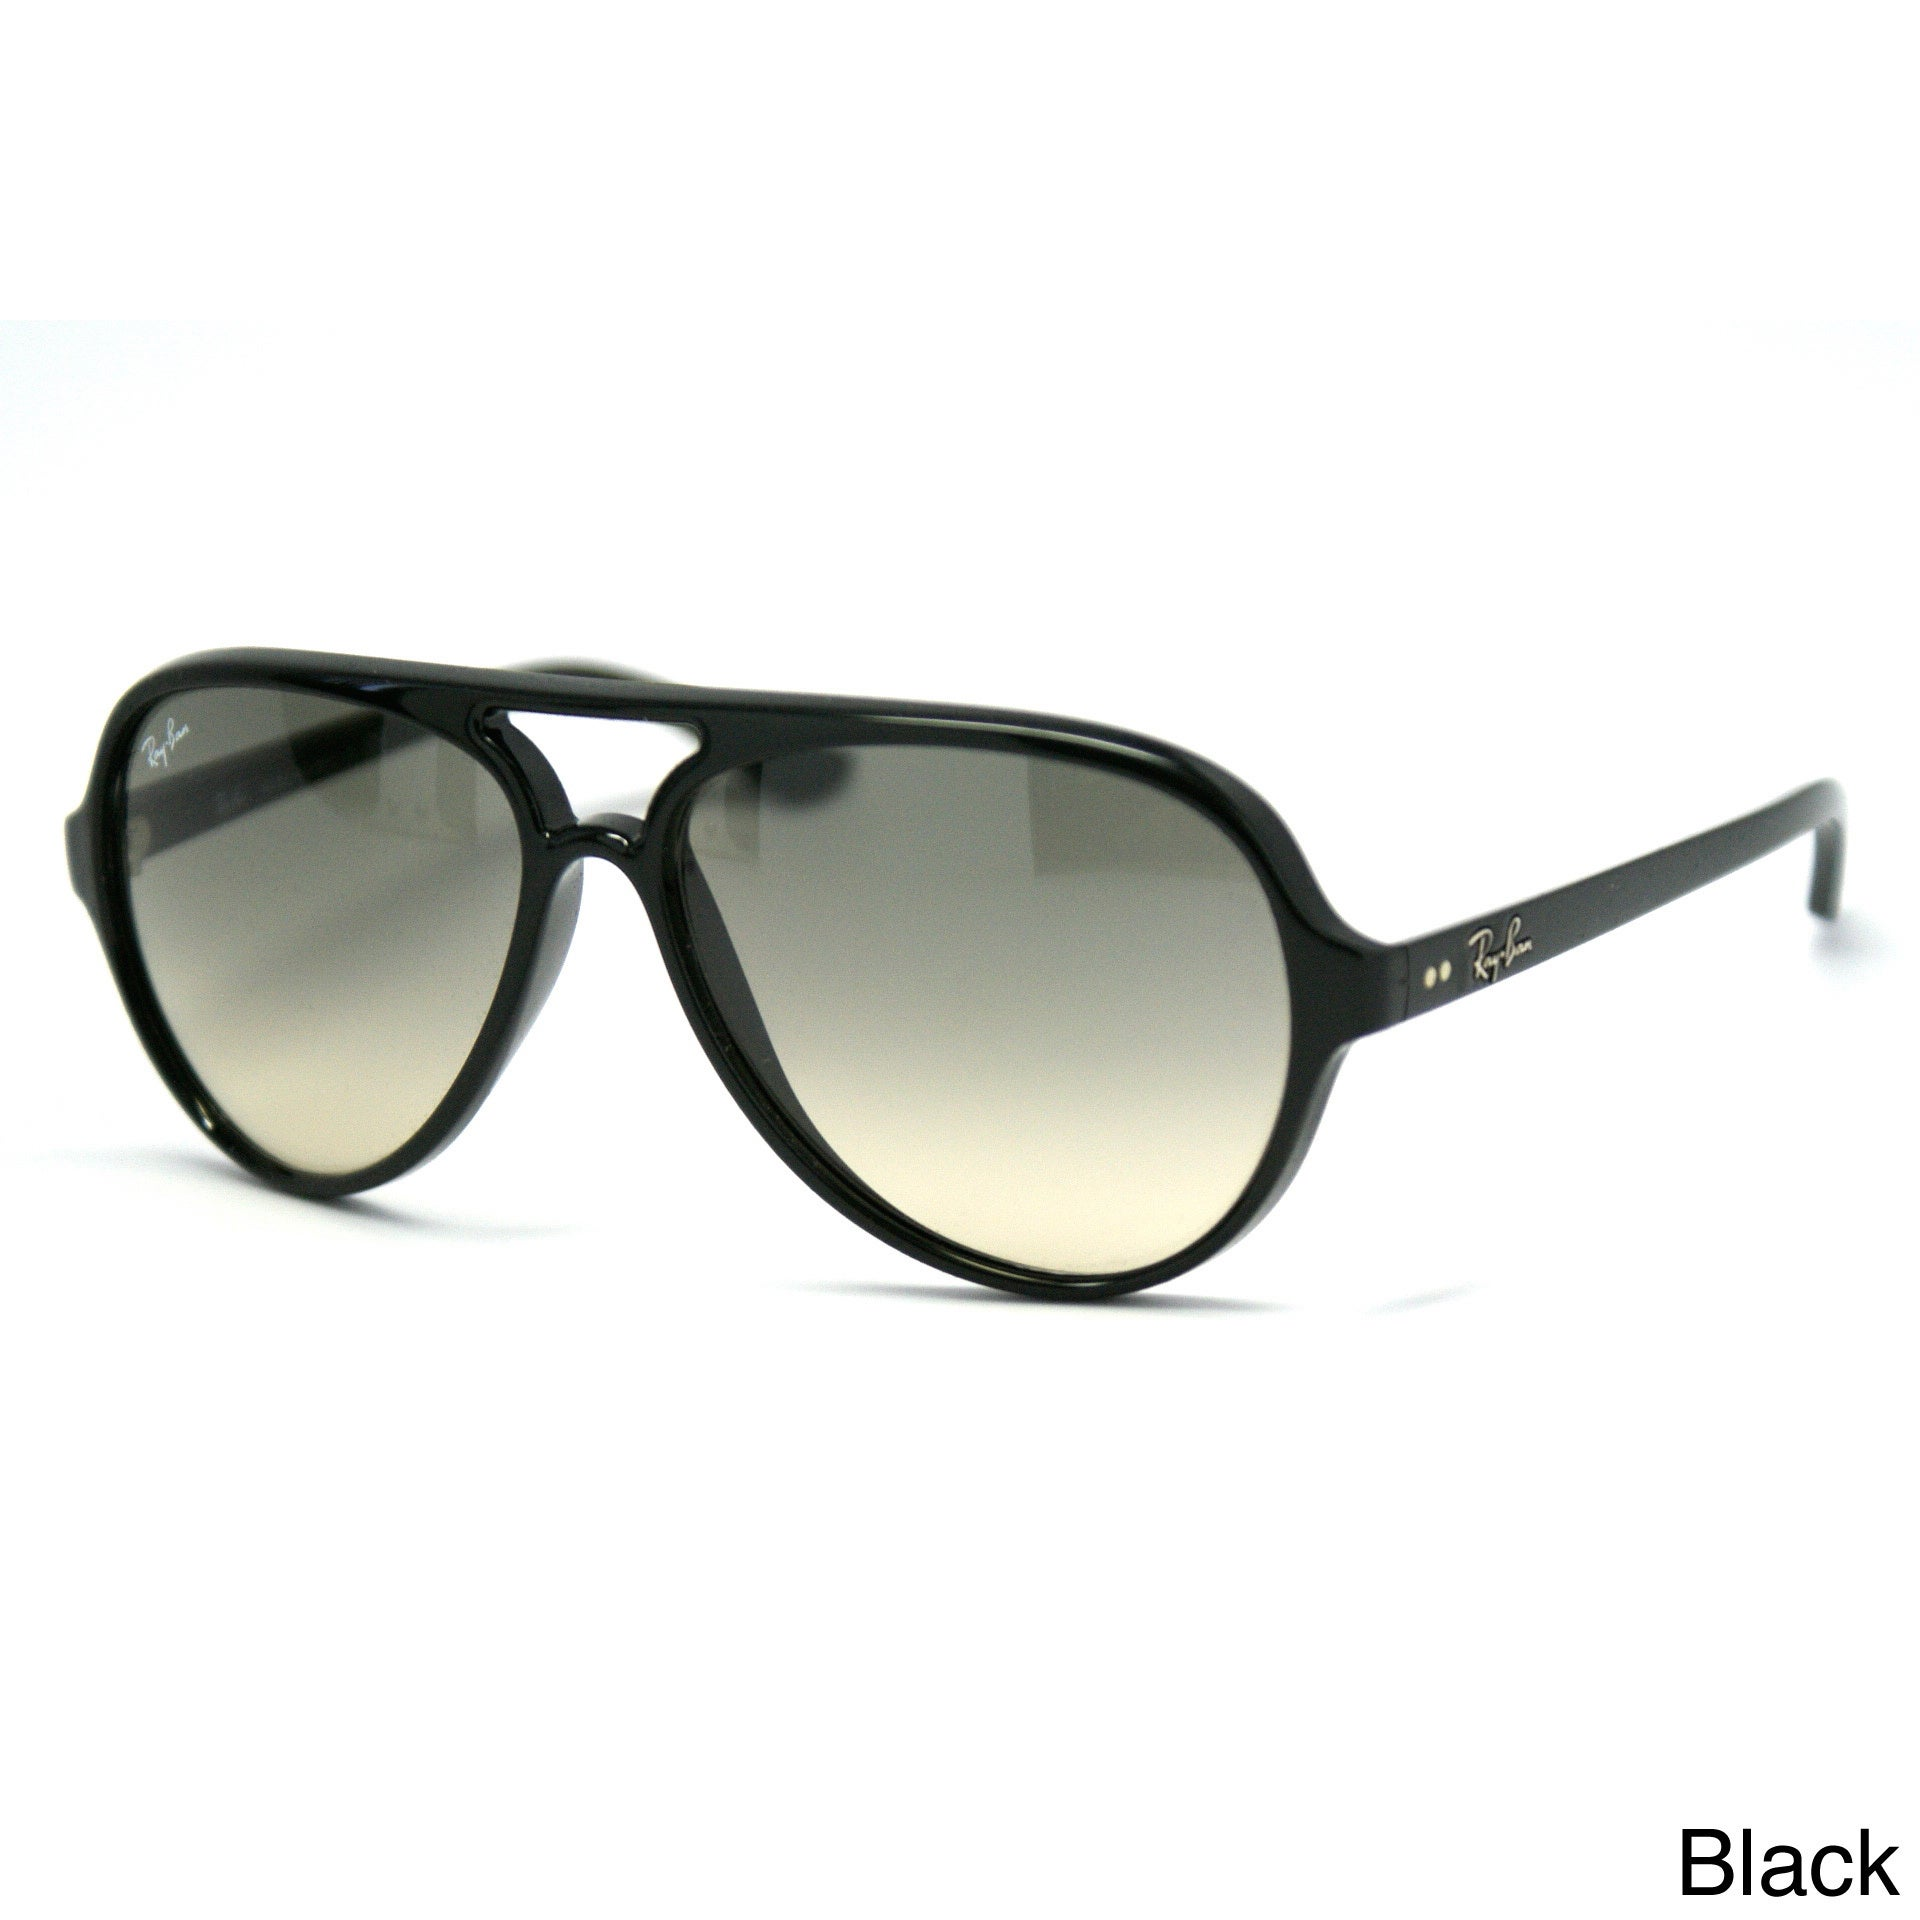 0d7d1b1a9d ... france shop ray ban mens rb4125 cats 5000 sunglasses free shipping  today overstock 9251980 f9a82 80d47